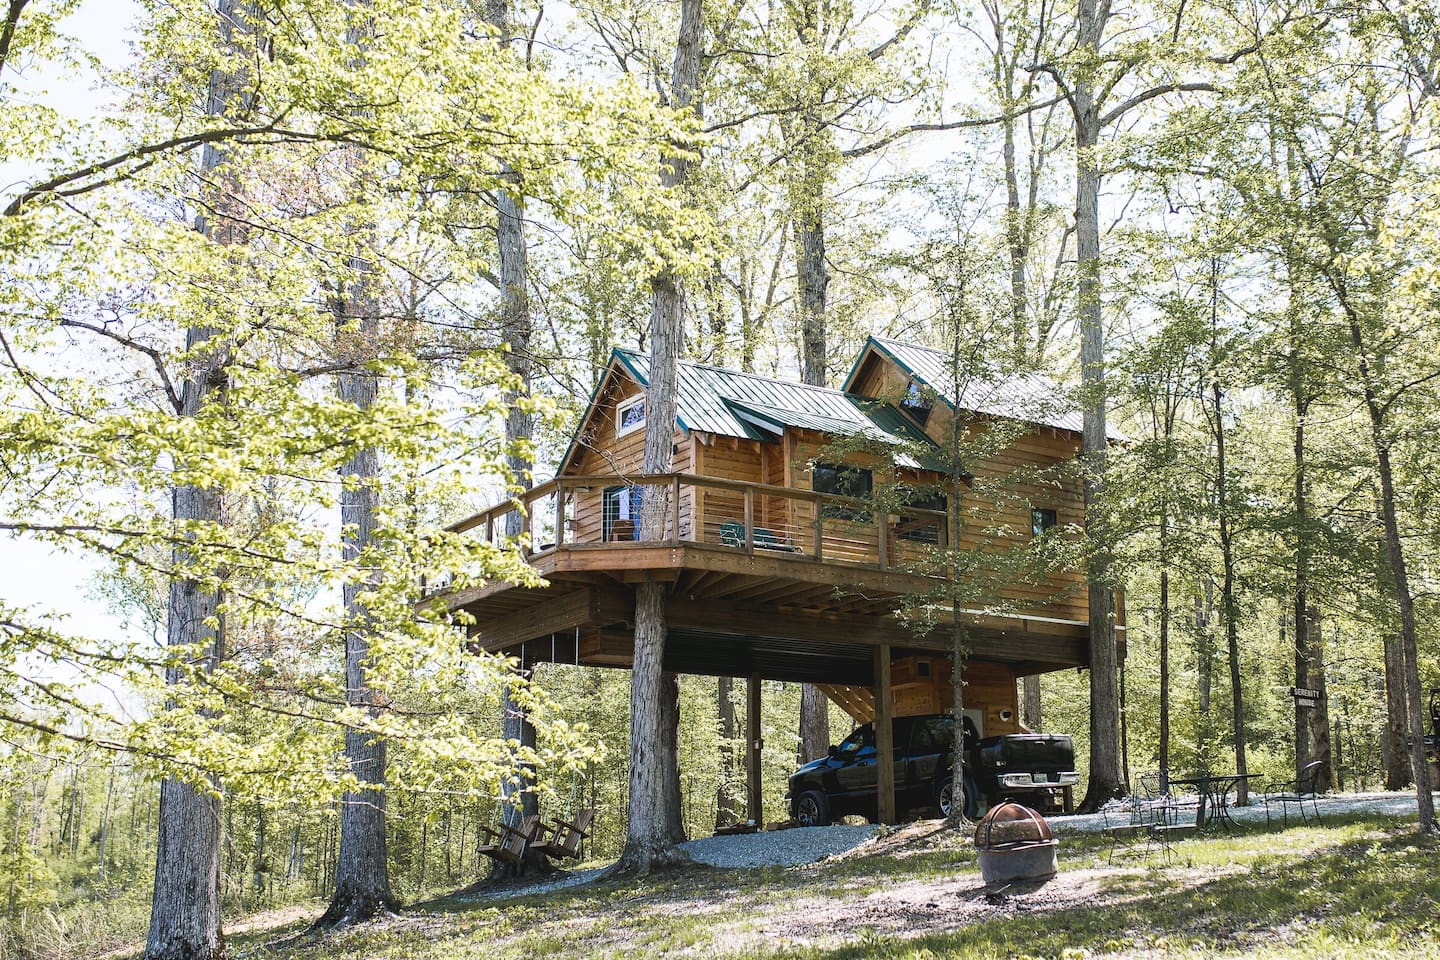 Serenity House - treehouse rentals tennessee airbnbSerenity House - treehouse rentals tennessee airbnb